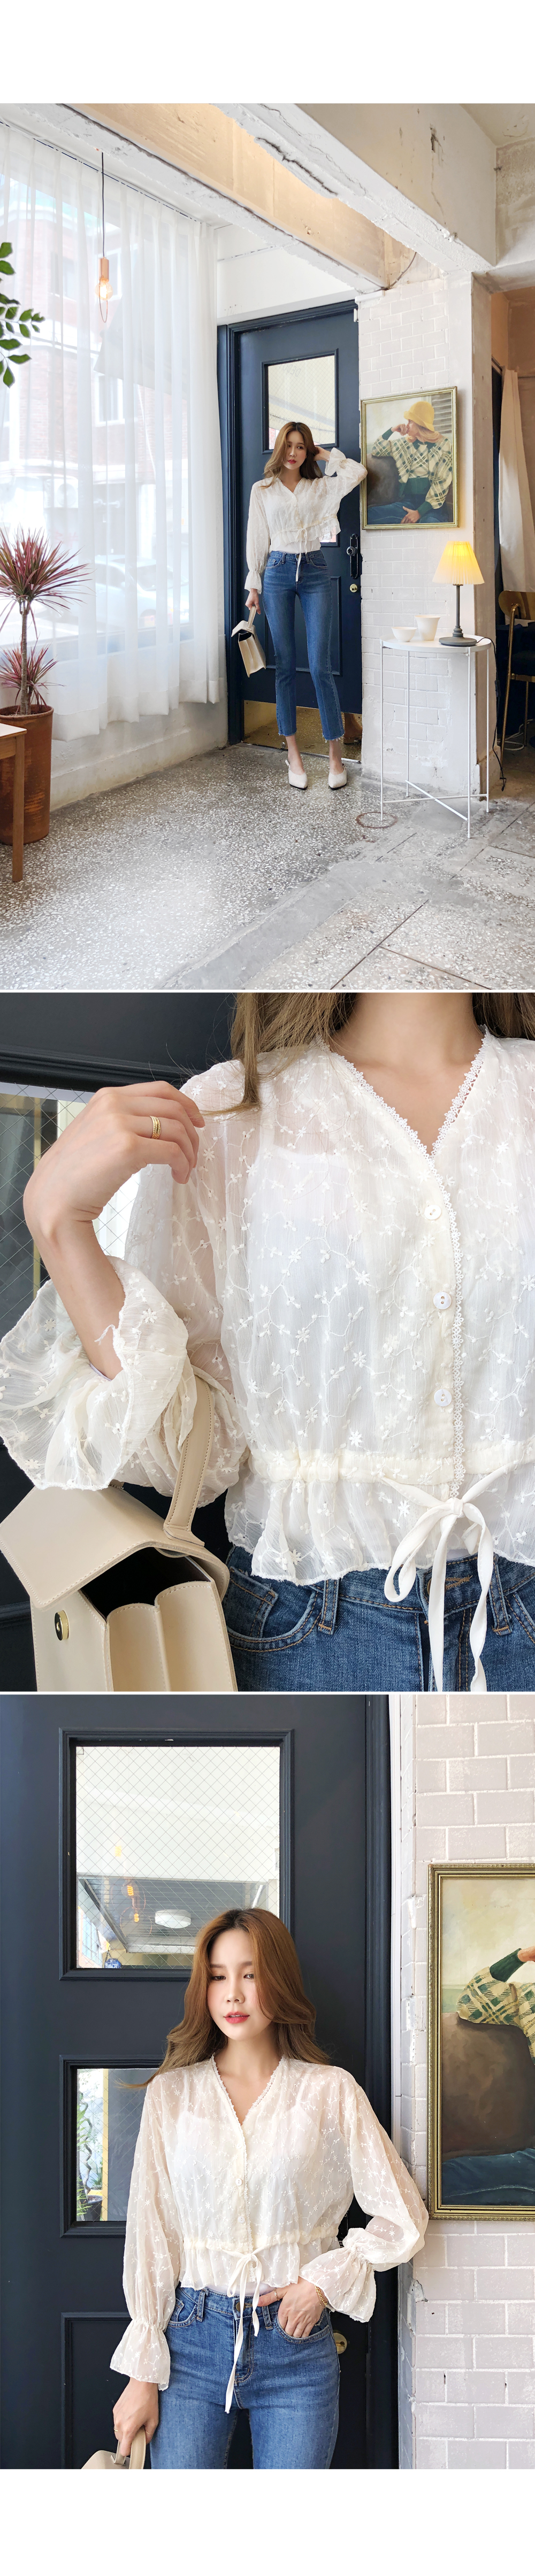 Blindness see-through blouse